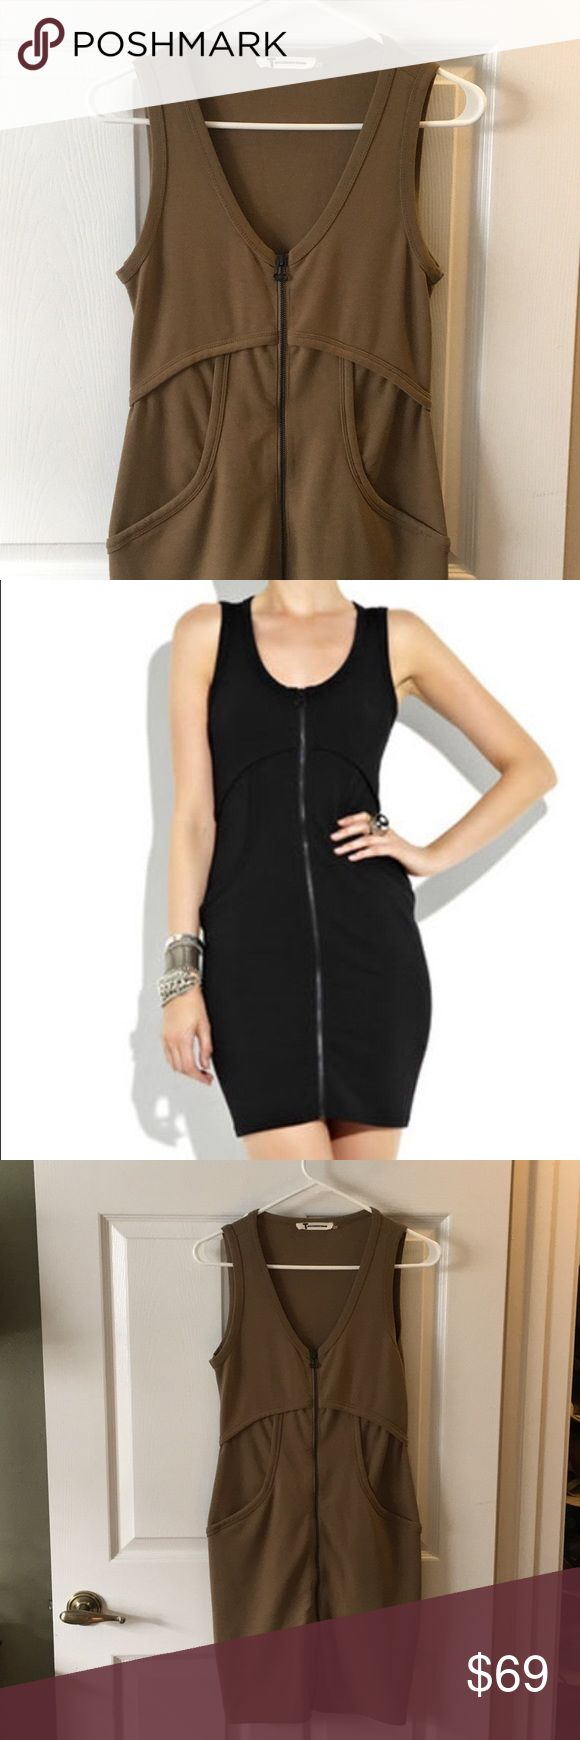 Alexander Wang bodycon dress (small) Camel colored  Thick jersey cotton  Pockets Brass zipper Size small to medium  Super flattering lines   Keywords: minidress, party, cocktail dress Alexander Wang Dresses Mini